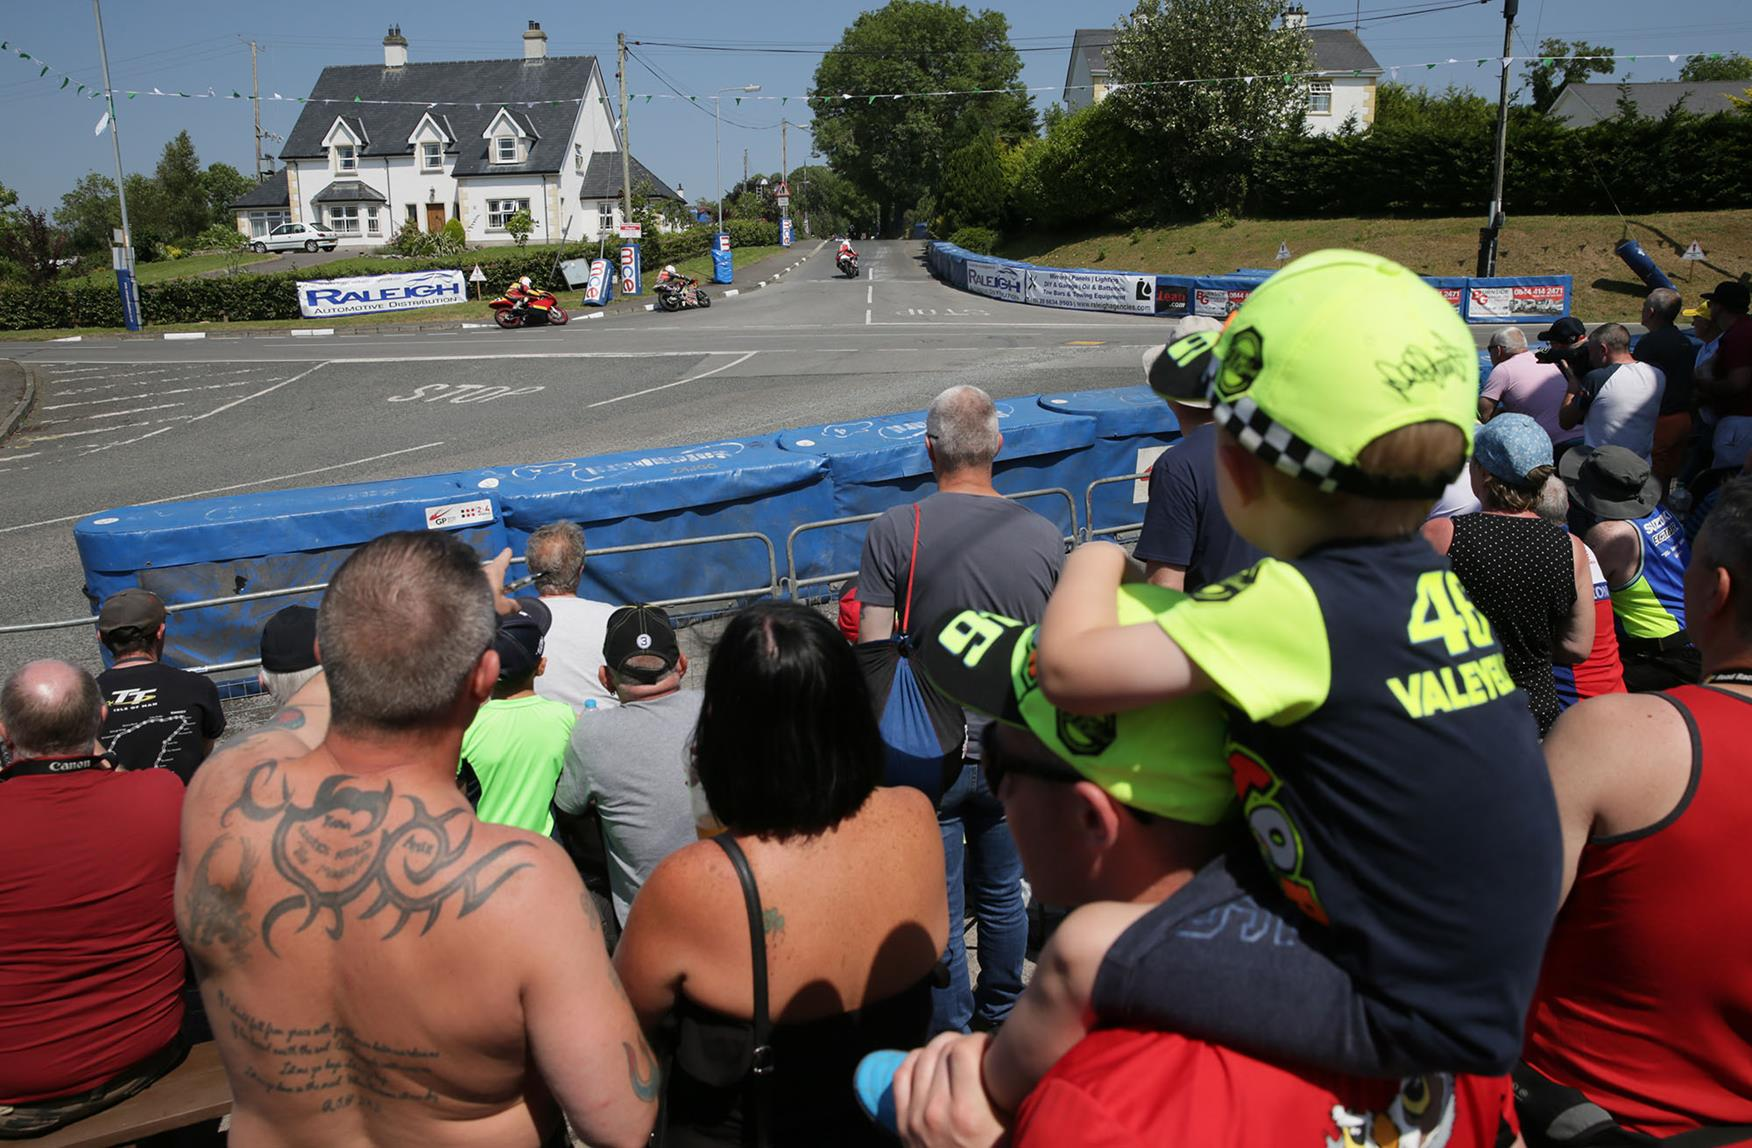 The crowds are crucial to the success of road race meetings